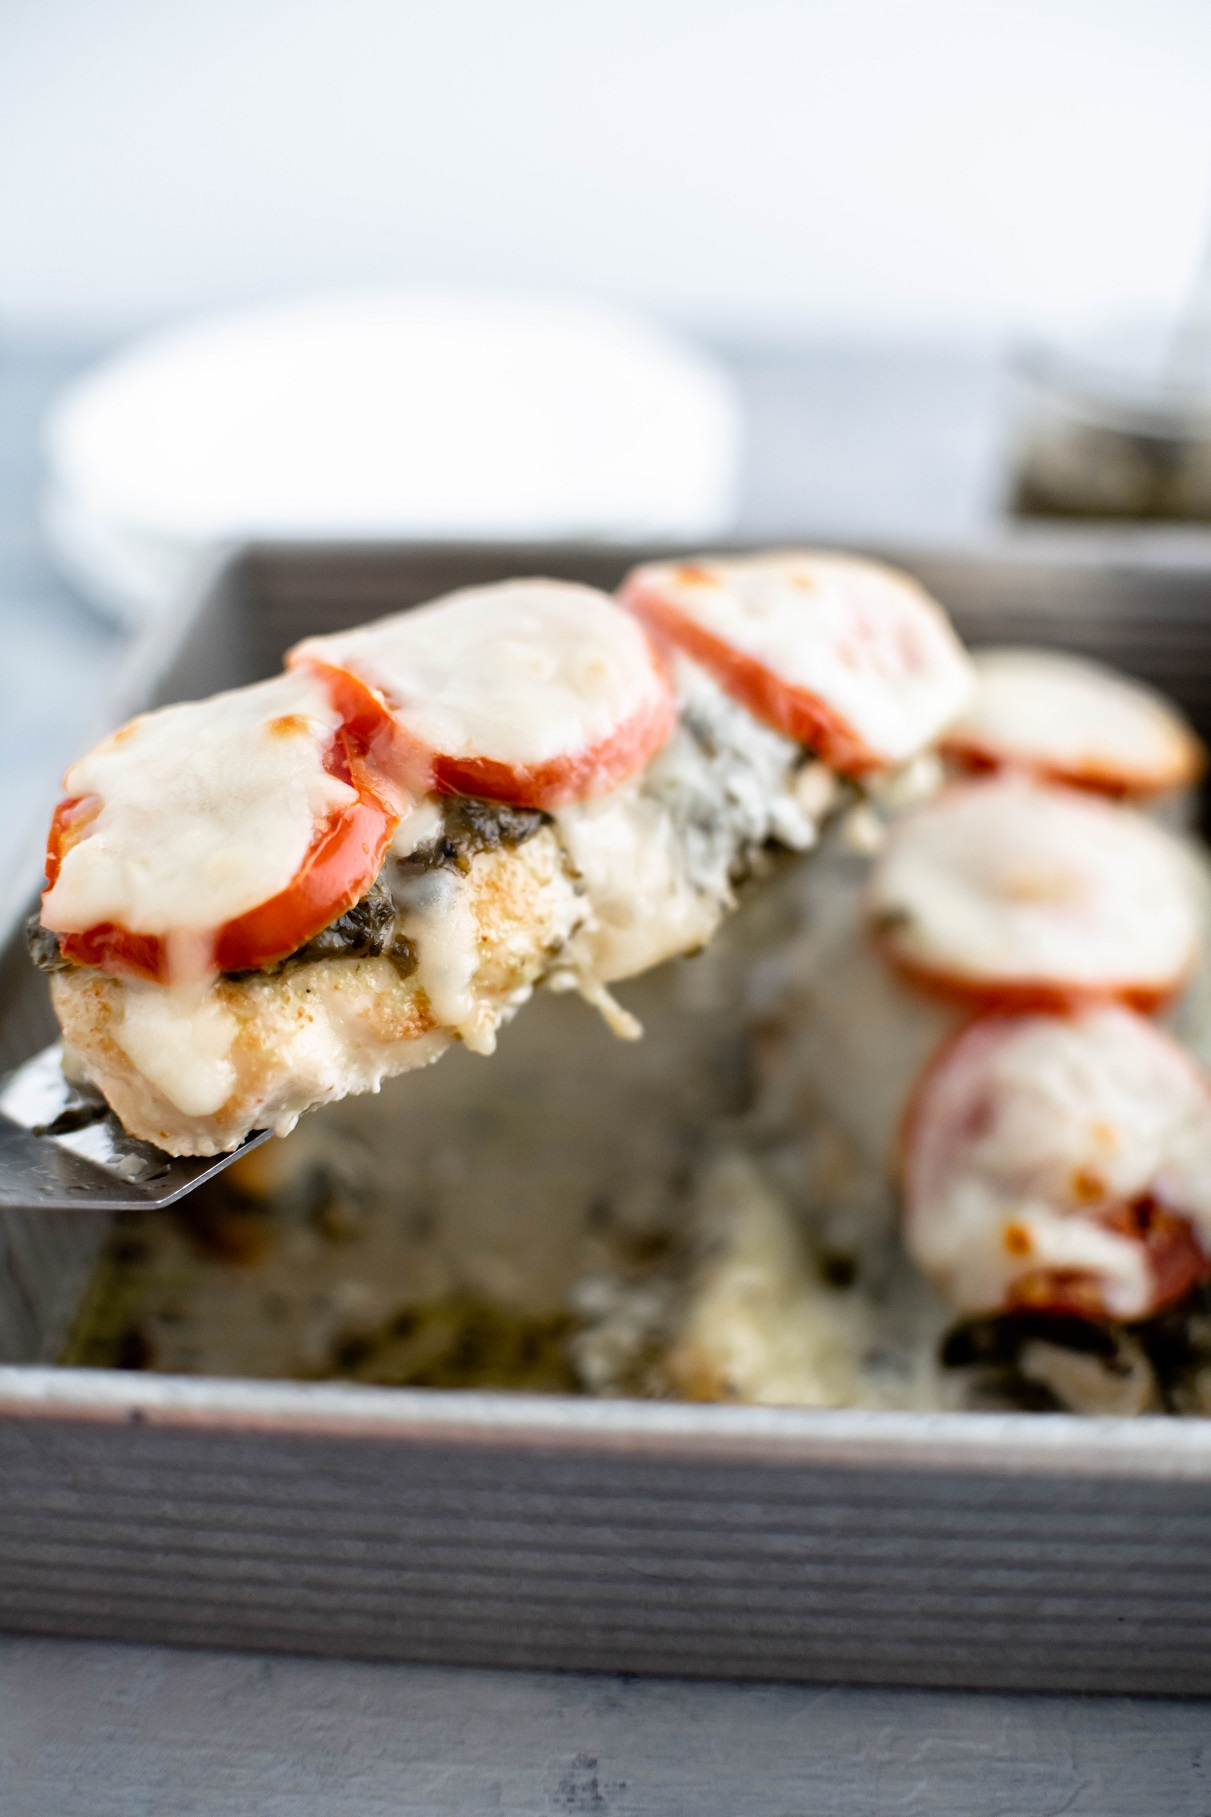 Baked pesto chicken being lifted from baking dish on a small spatula.